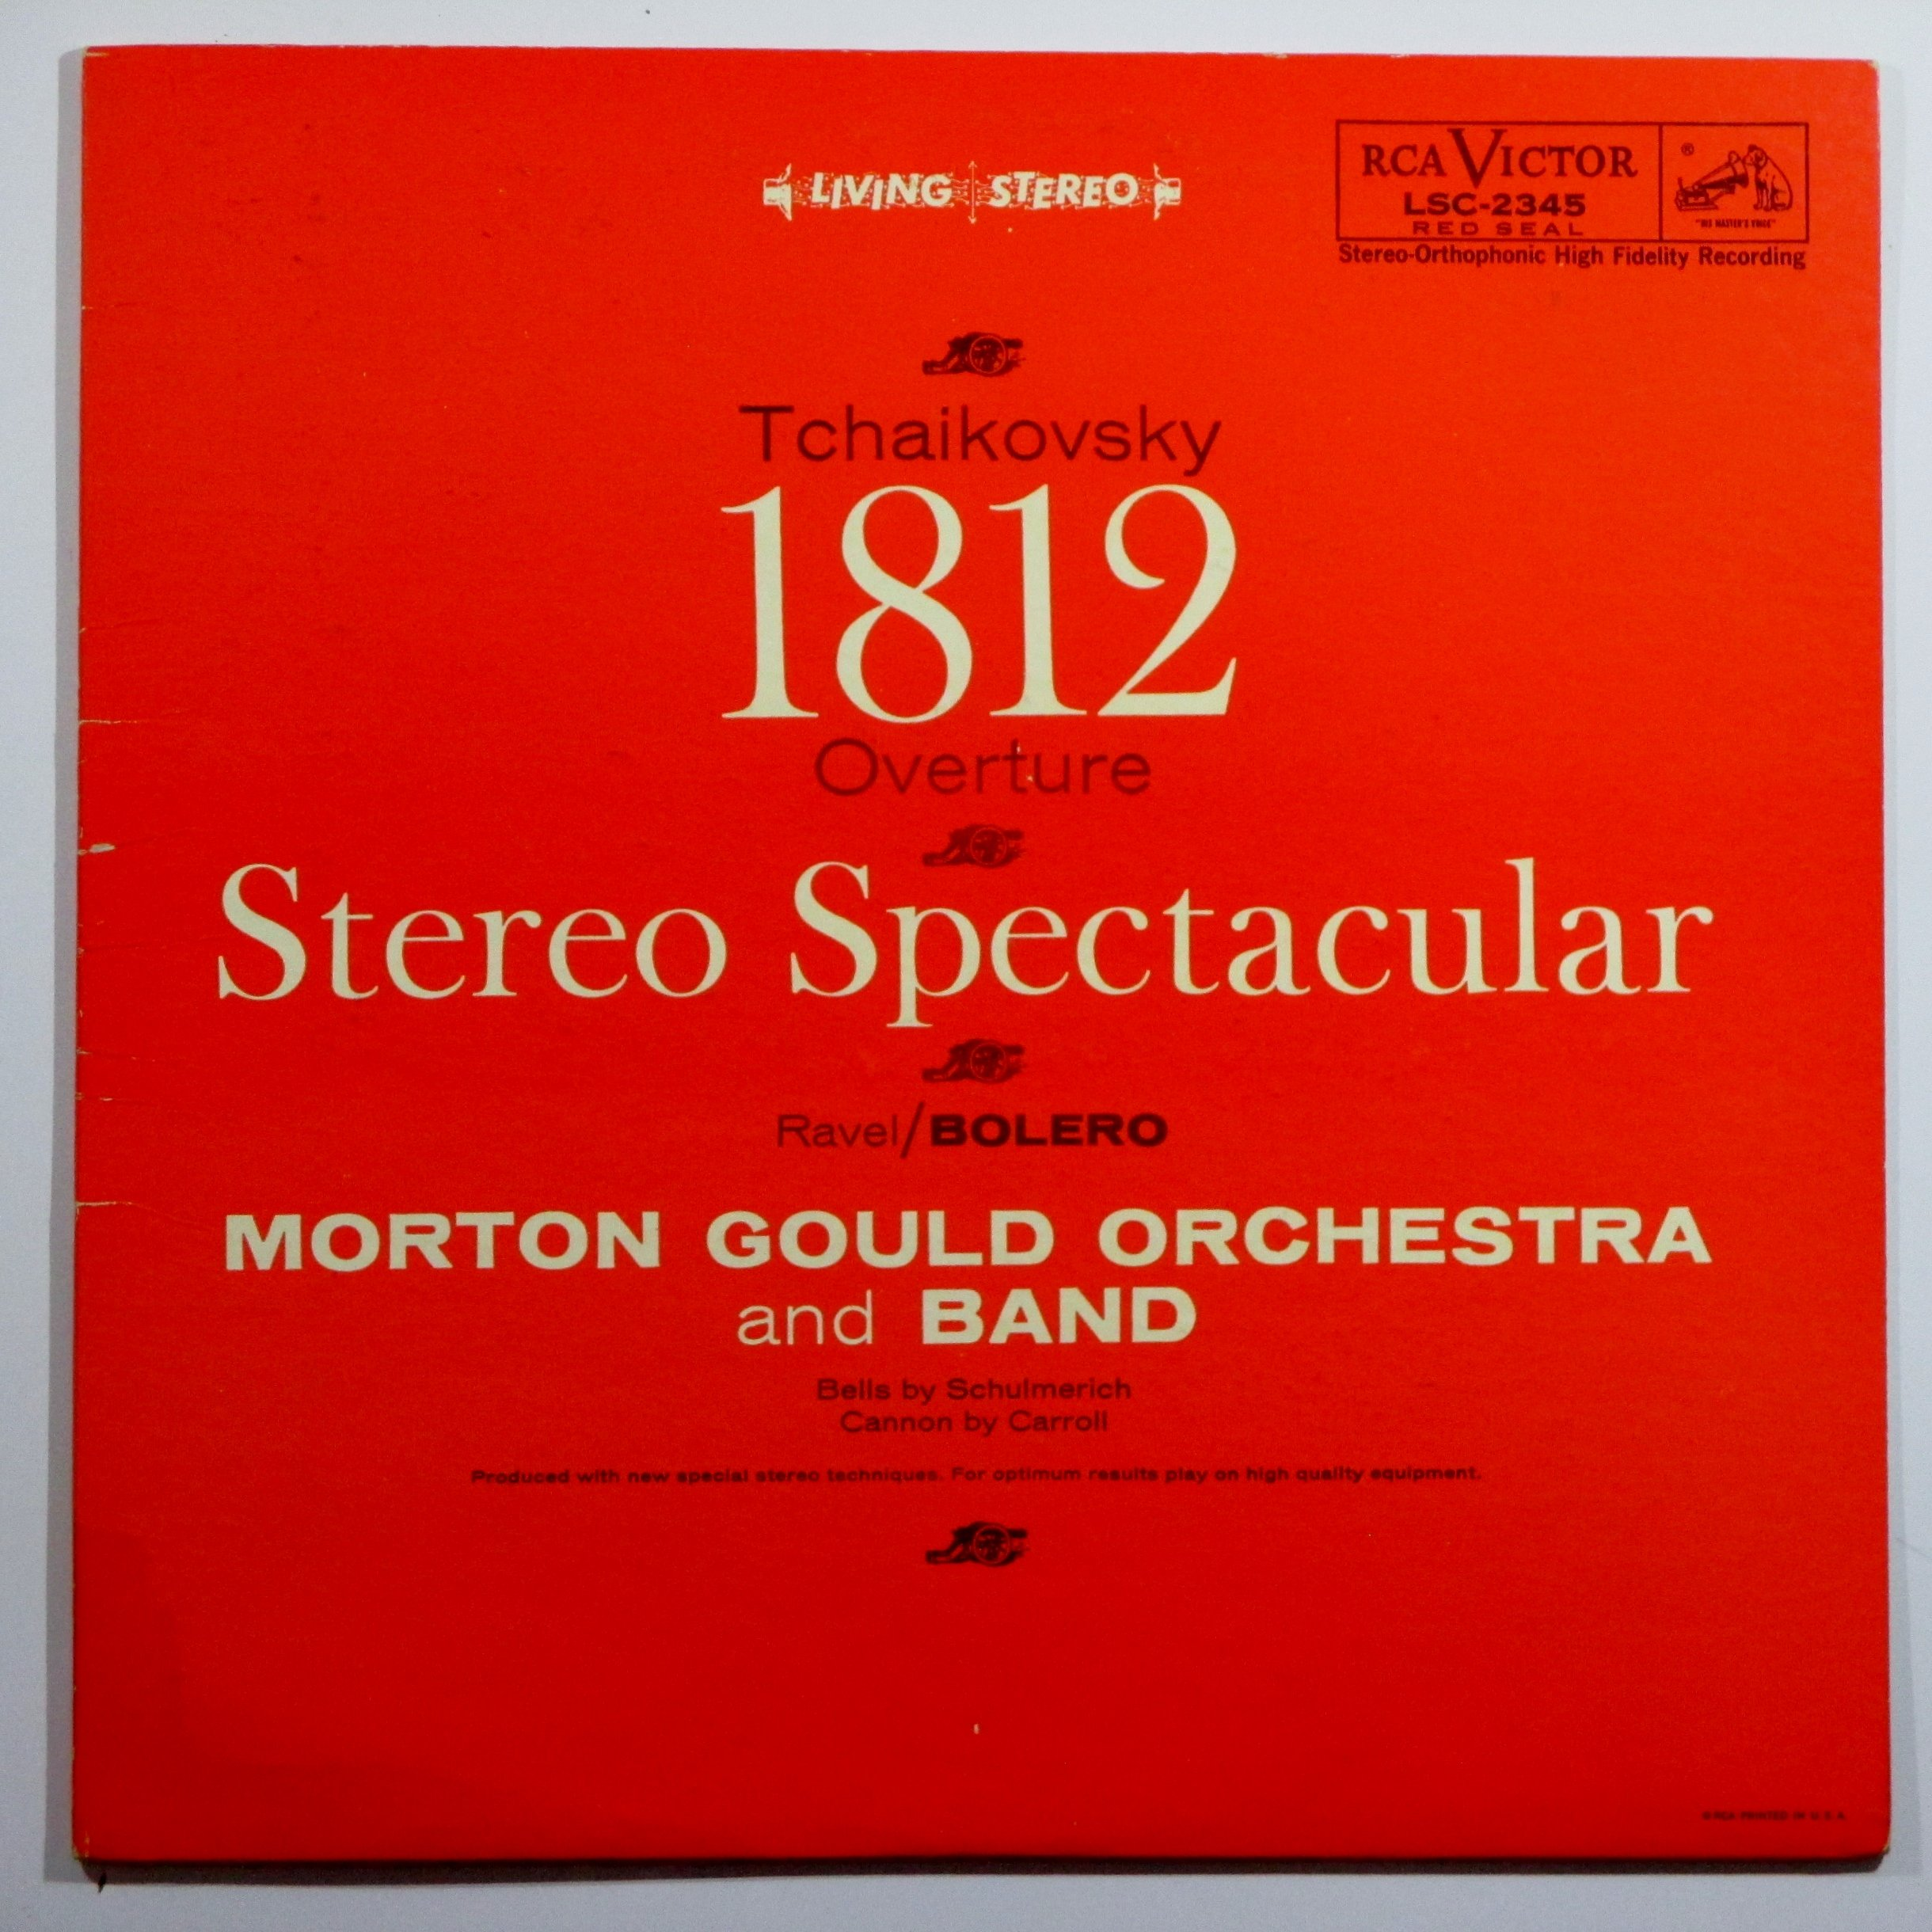 Stereo Spectacular: 1812 Overture / Bolero by RCA Victor Red Seal